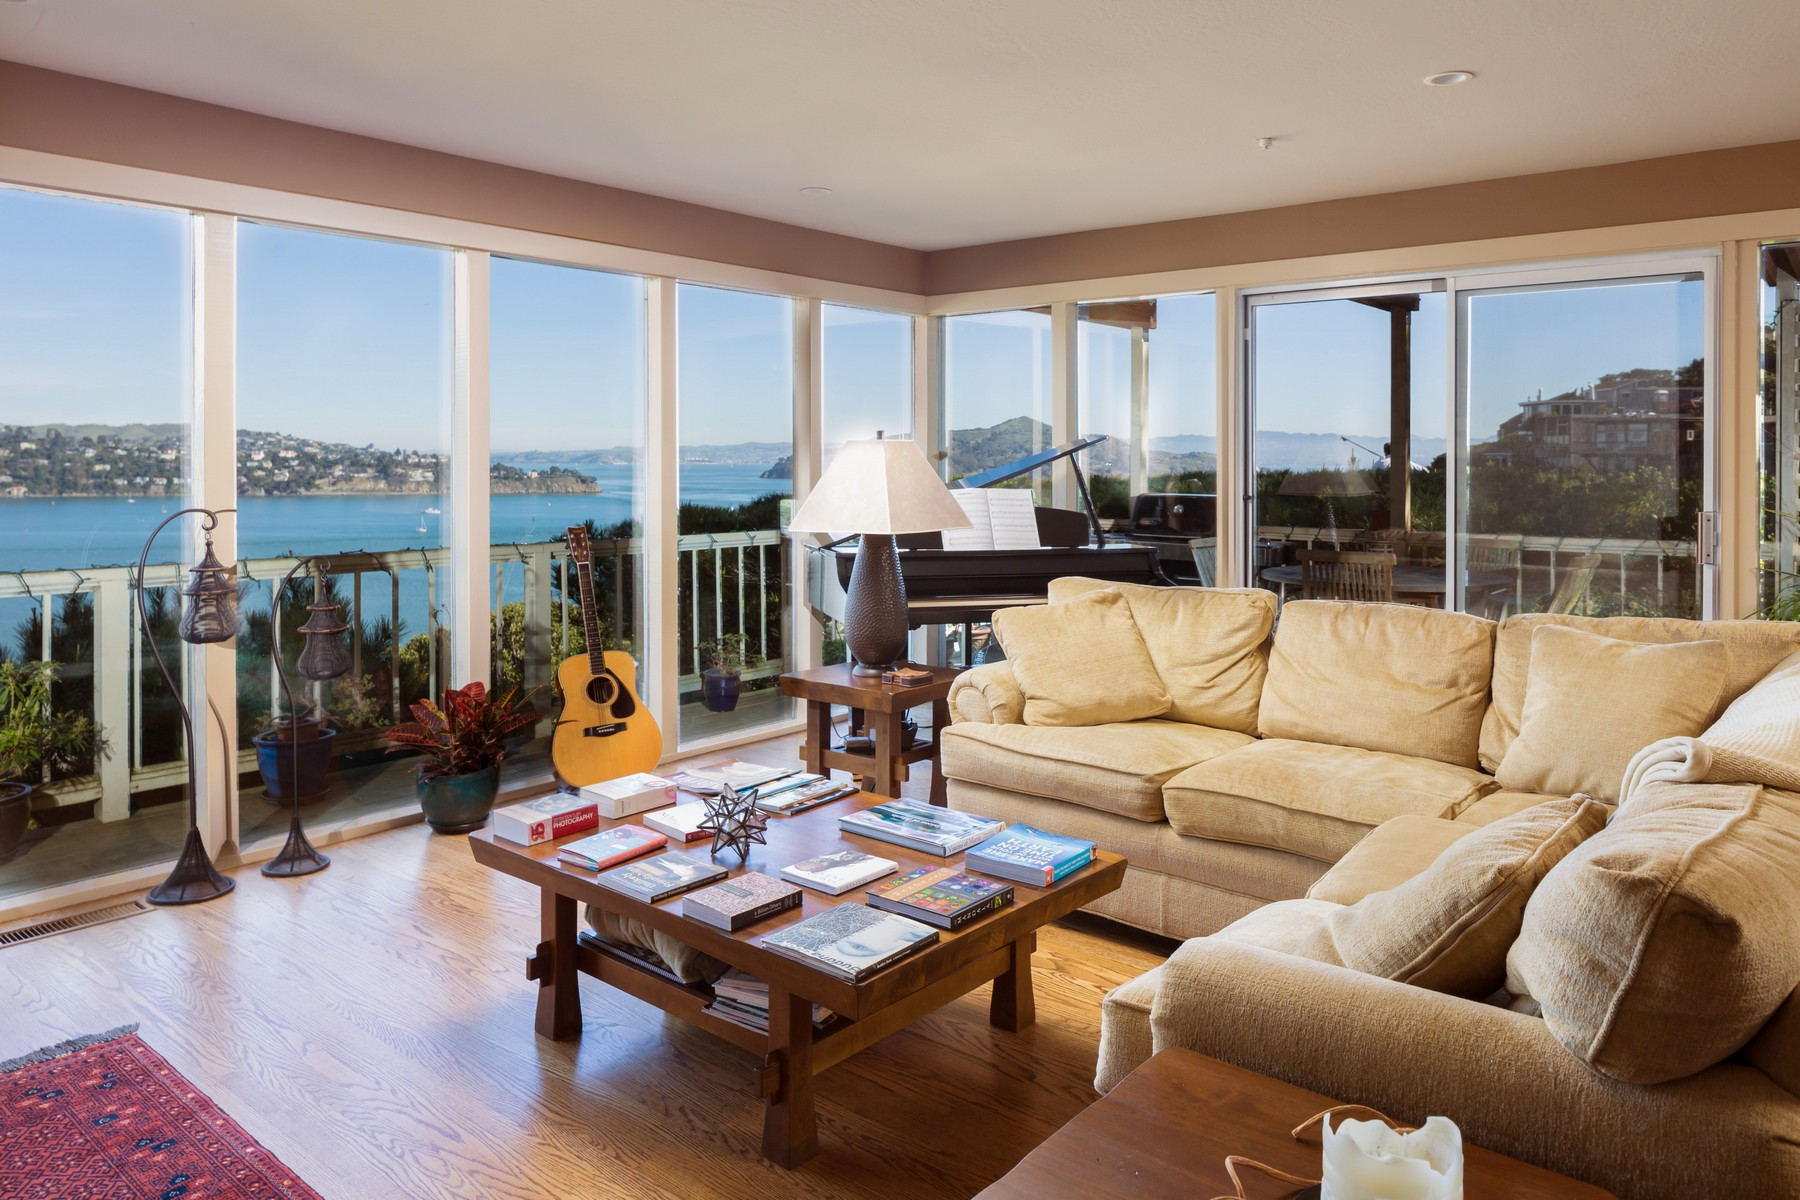 Property For Sale at Sausalito Pied-A-Terre with Panormic Views!